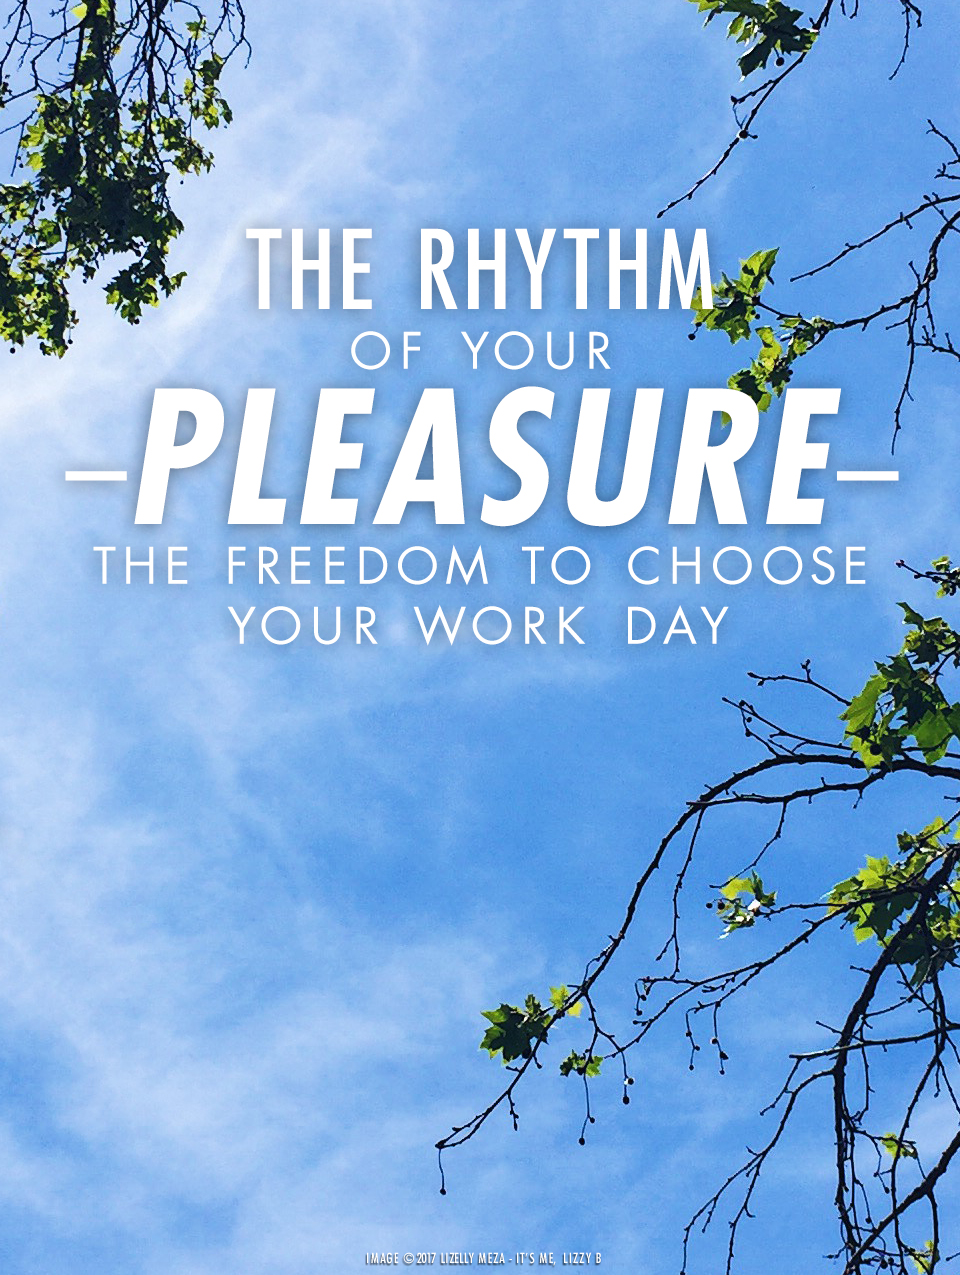 The Rhythm of Your Pleasure—The Freedom to Choose Your Work Day // It's Me, Lizzy B - Musings on Life, Business, & The Pursuit of Curiosity // Personal blog of Lizelly Meza